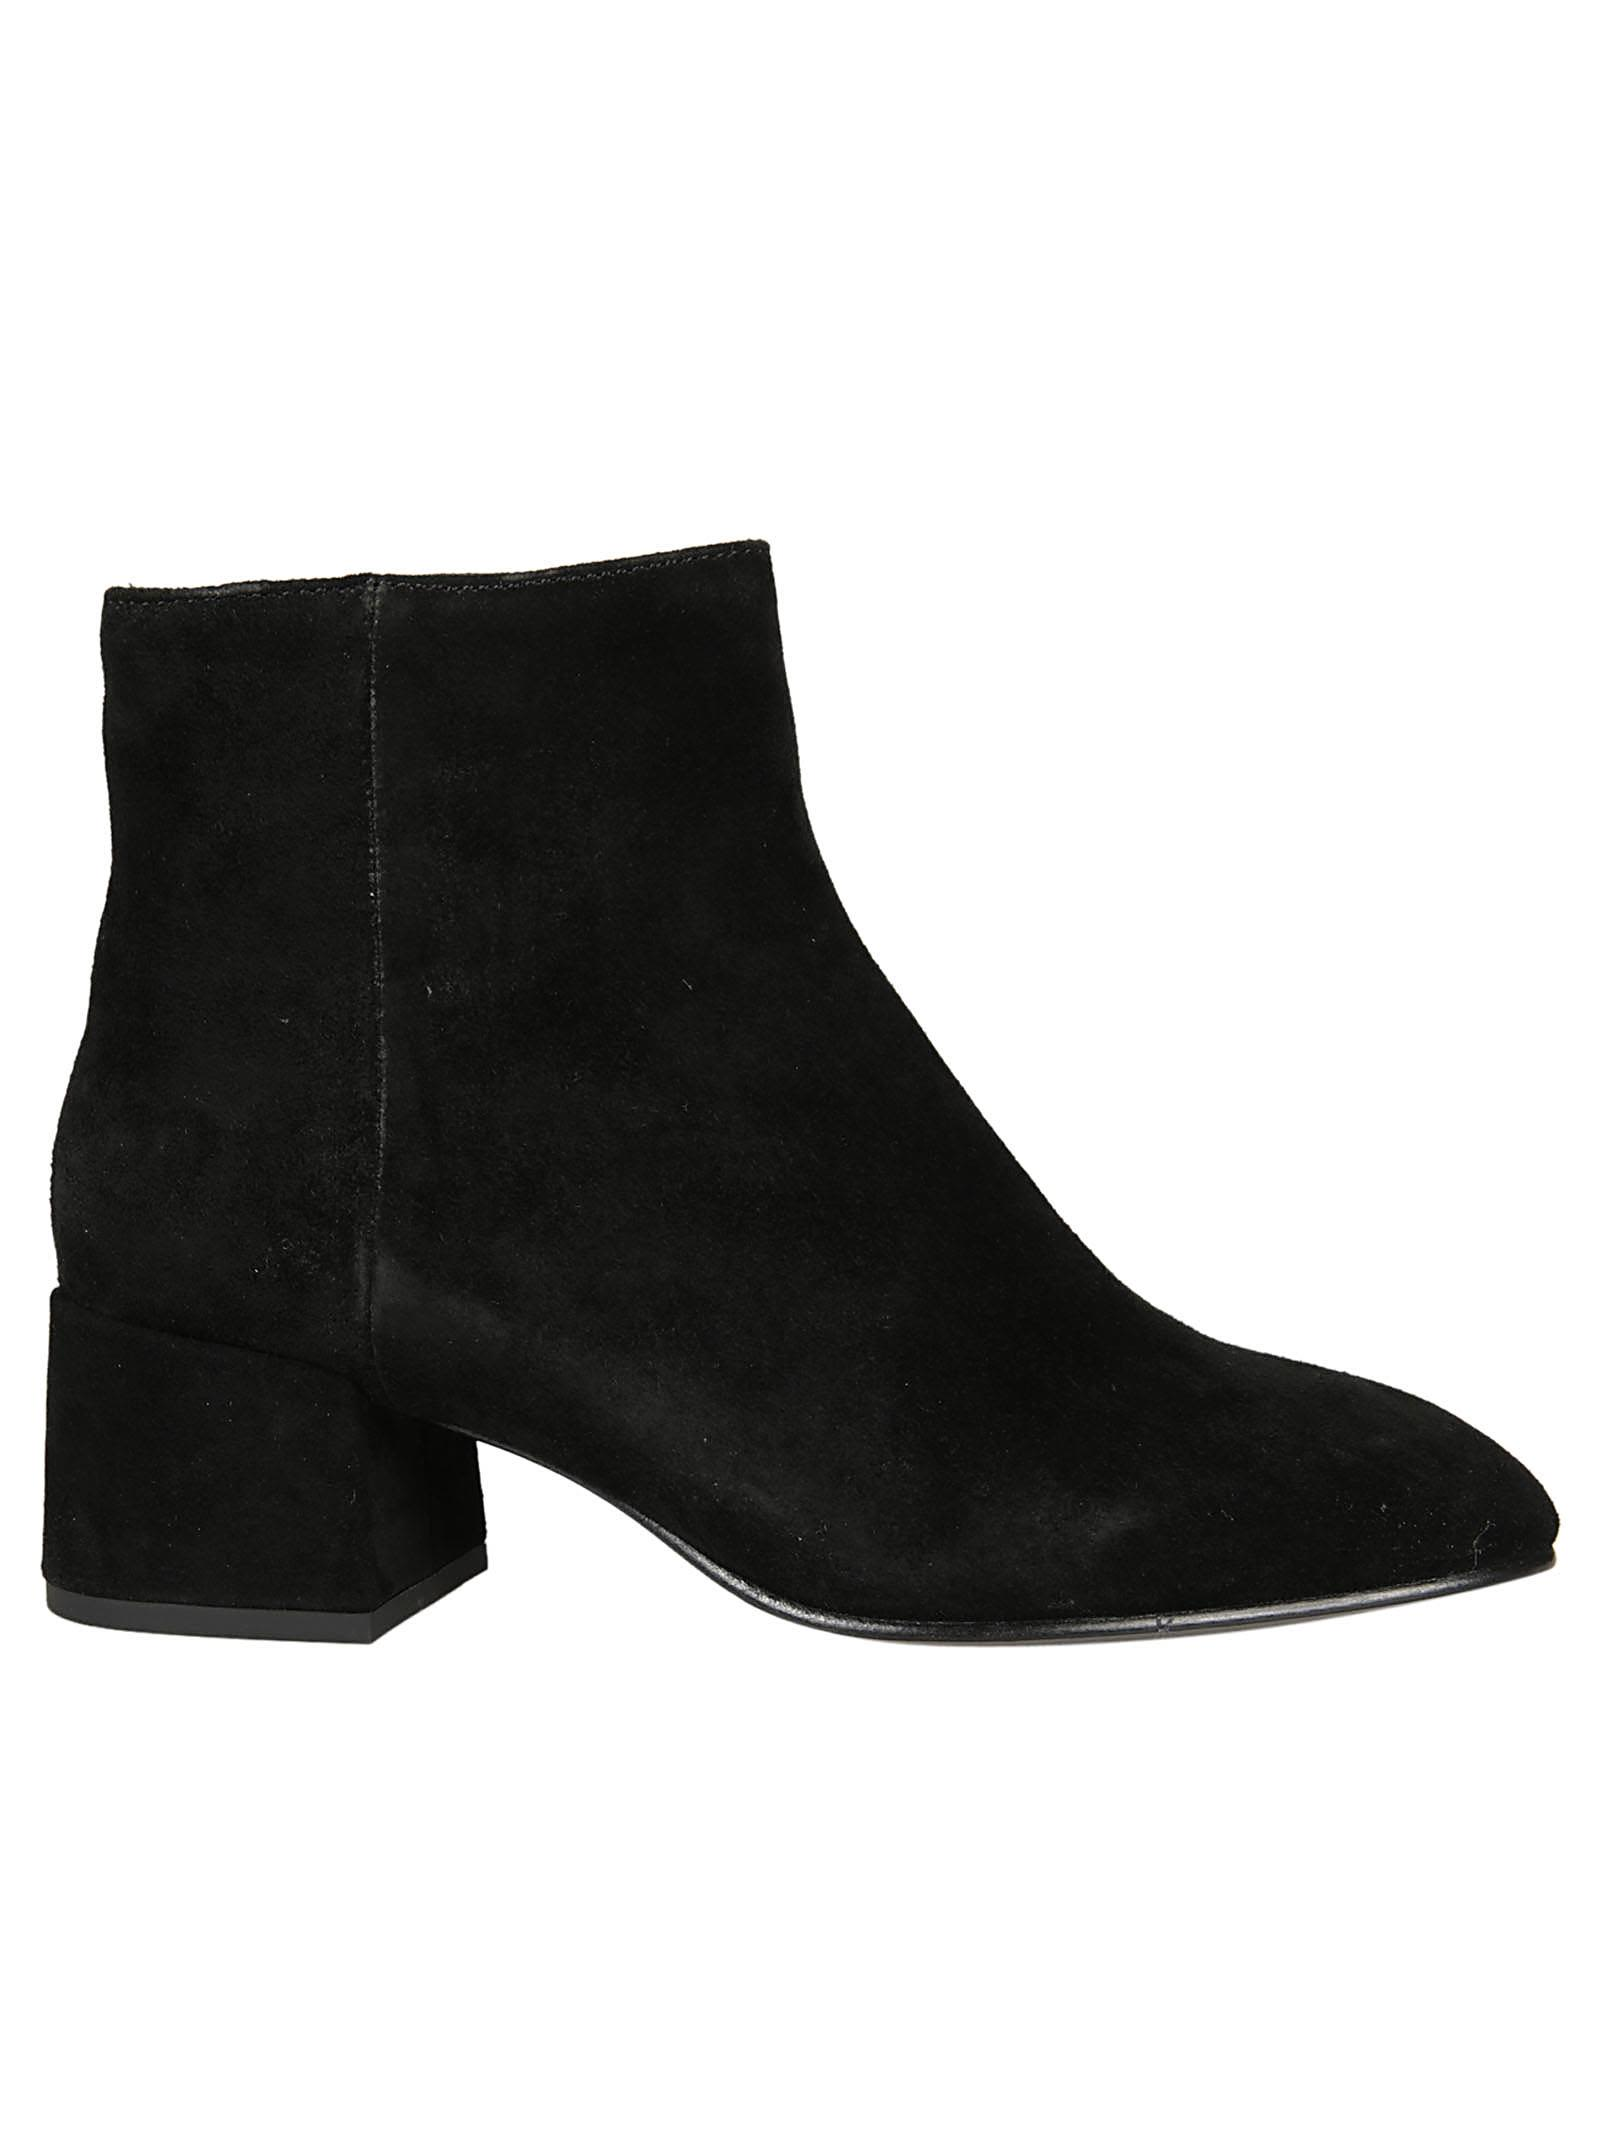 Ash Dragon Ankle Boots